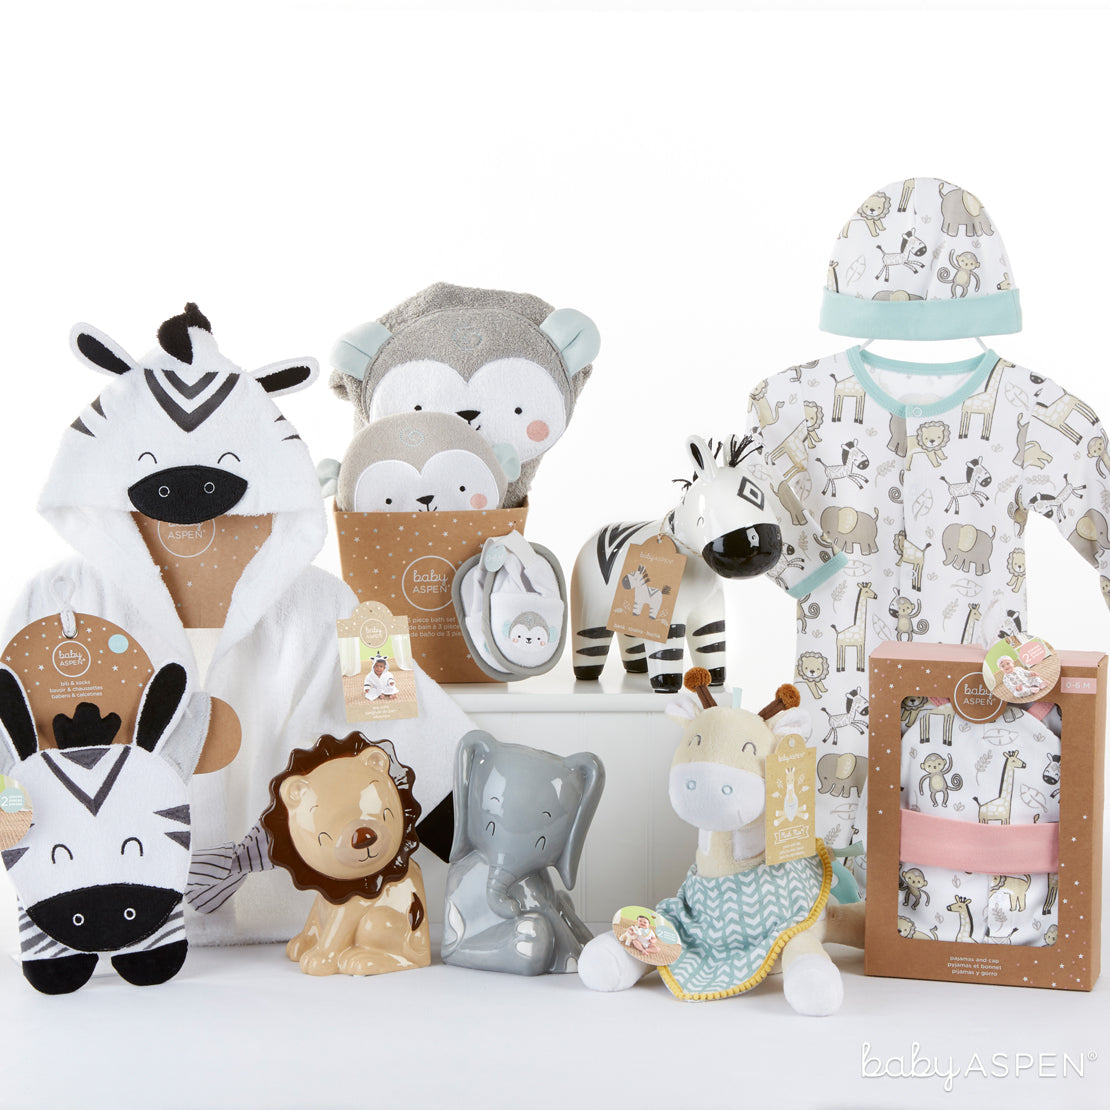 Safari Collection | Go Wild With Safari Themed Baby Gifts | Baby Aspen